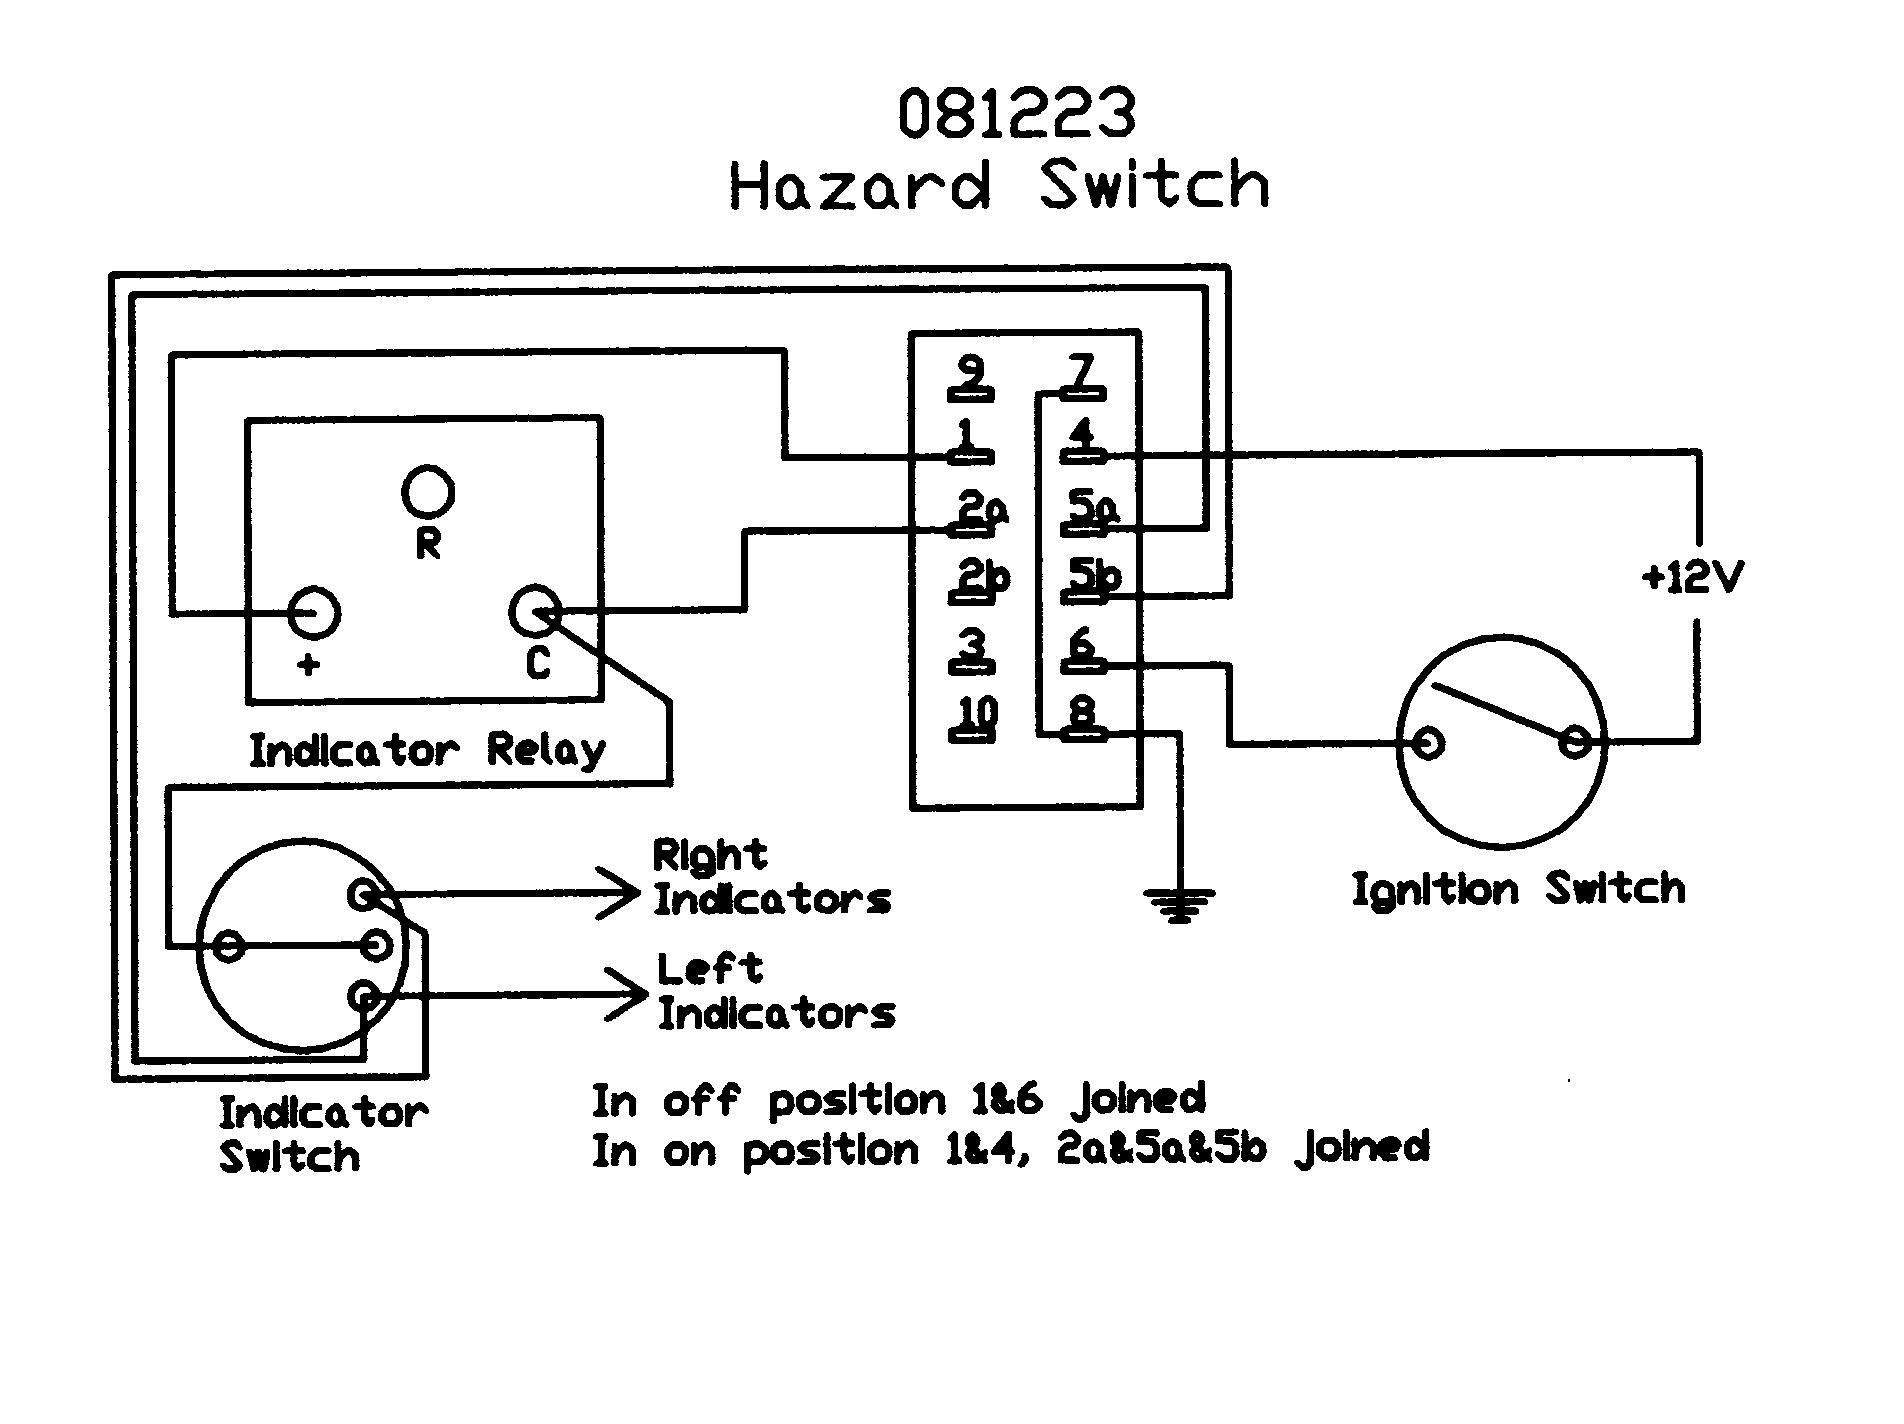 wiring diagram for a single pole light switch with 43 on Motorcycle Spotlight Relay Switch Diagram in addition Home Automation Mechanical Relays And Physical Switches moreover How To Install Dimmer Switch Recessed Lighting in addition Wiring Diagram 86 87 85 30 Relay together with Wiring Diagram For Switched Light Fixture.